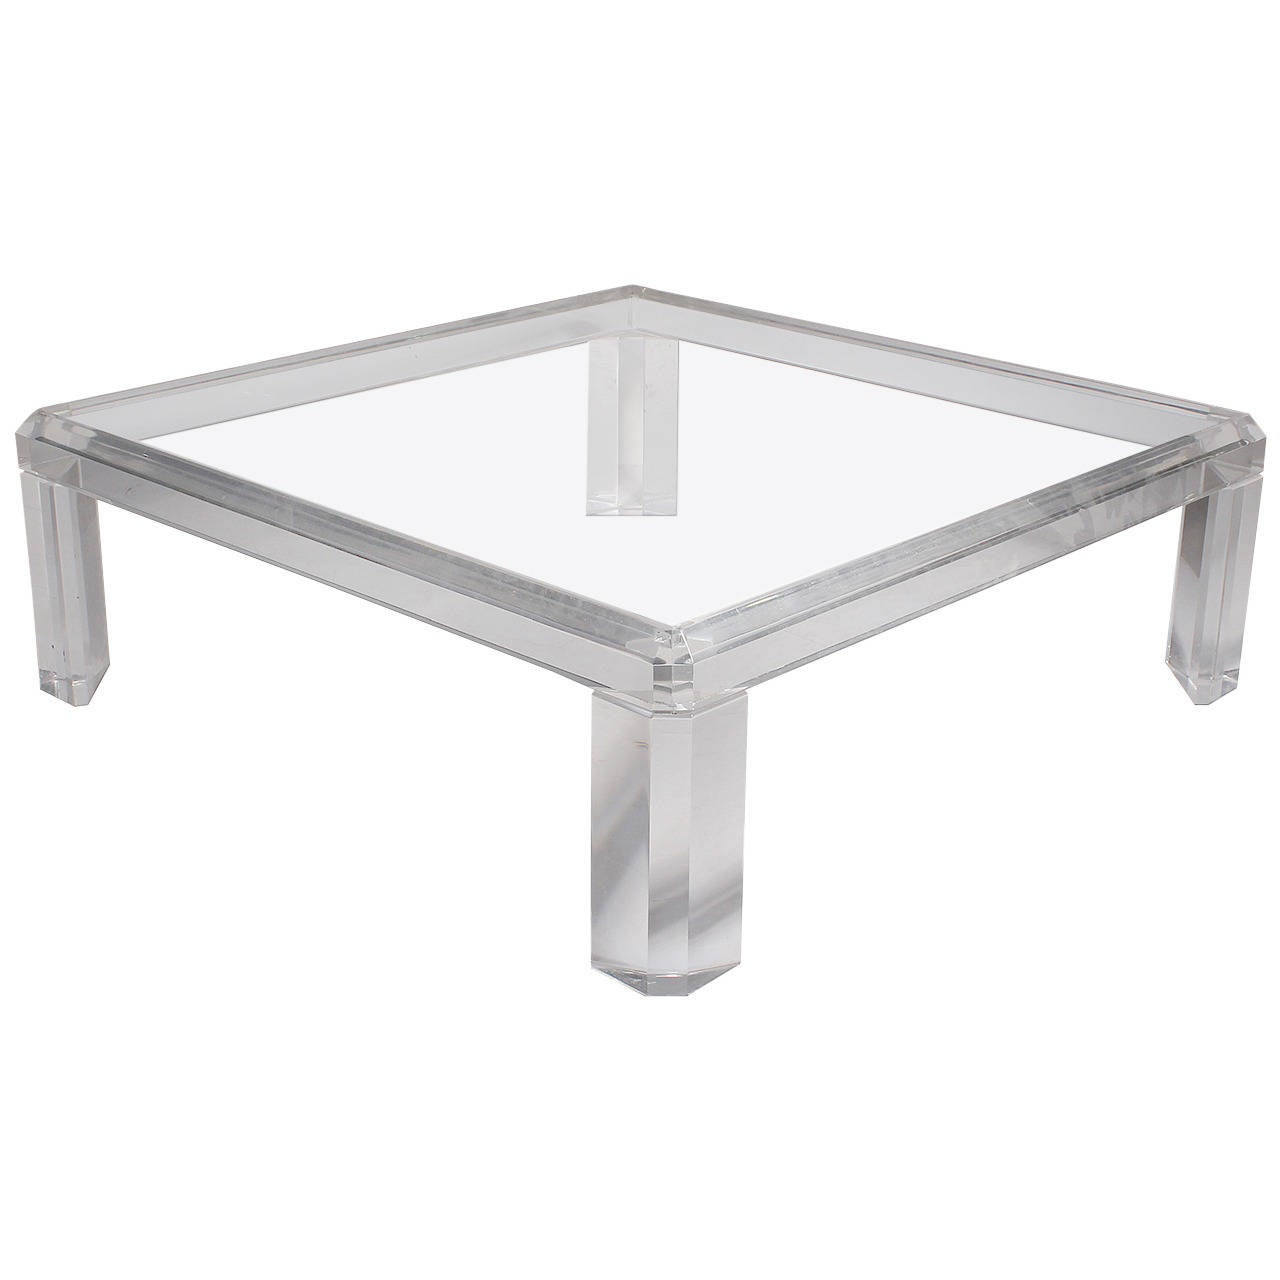 Karl Springer Style Square Lucite Coffee Table 1